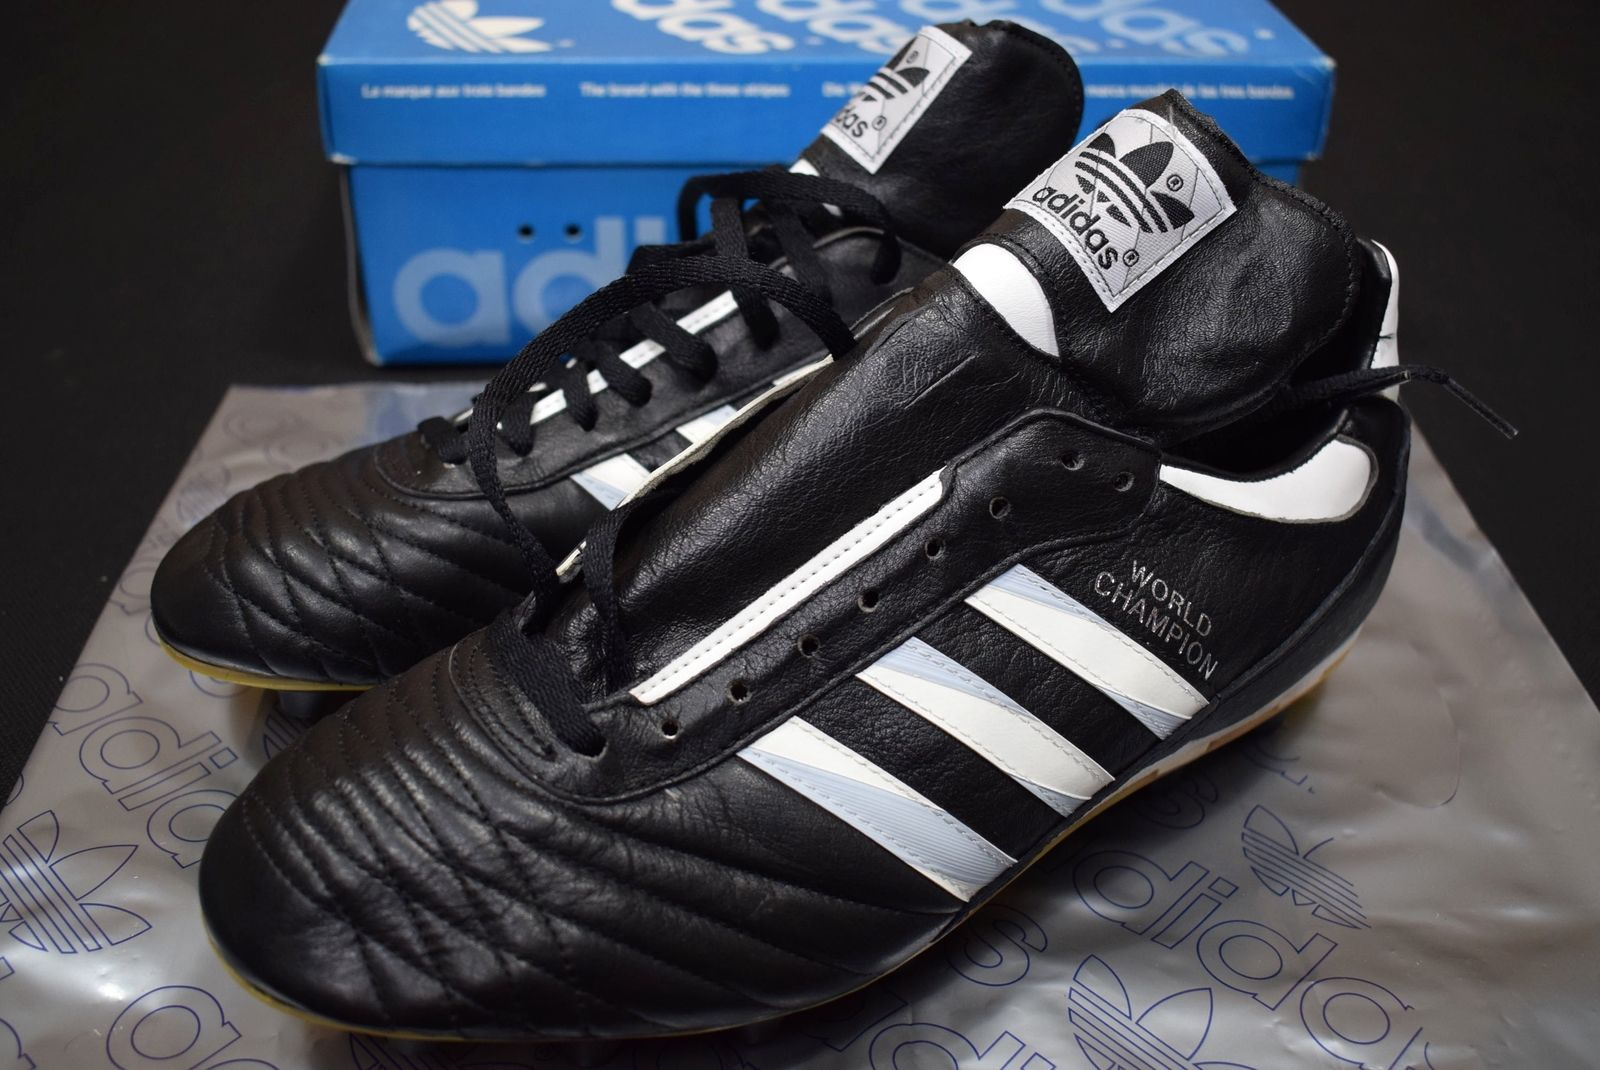 Adidas World Cup Fussball Schuhe Soccer Shoes Football Cleats West Germany 44 Ne Ebay Football Cleats Football Shoes Football Boots